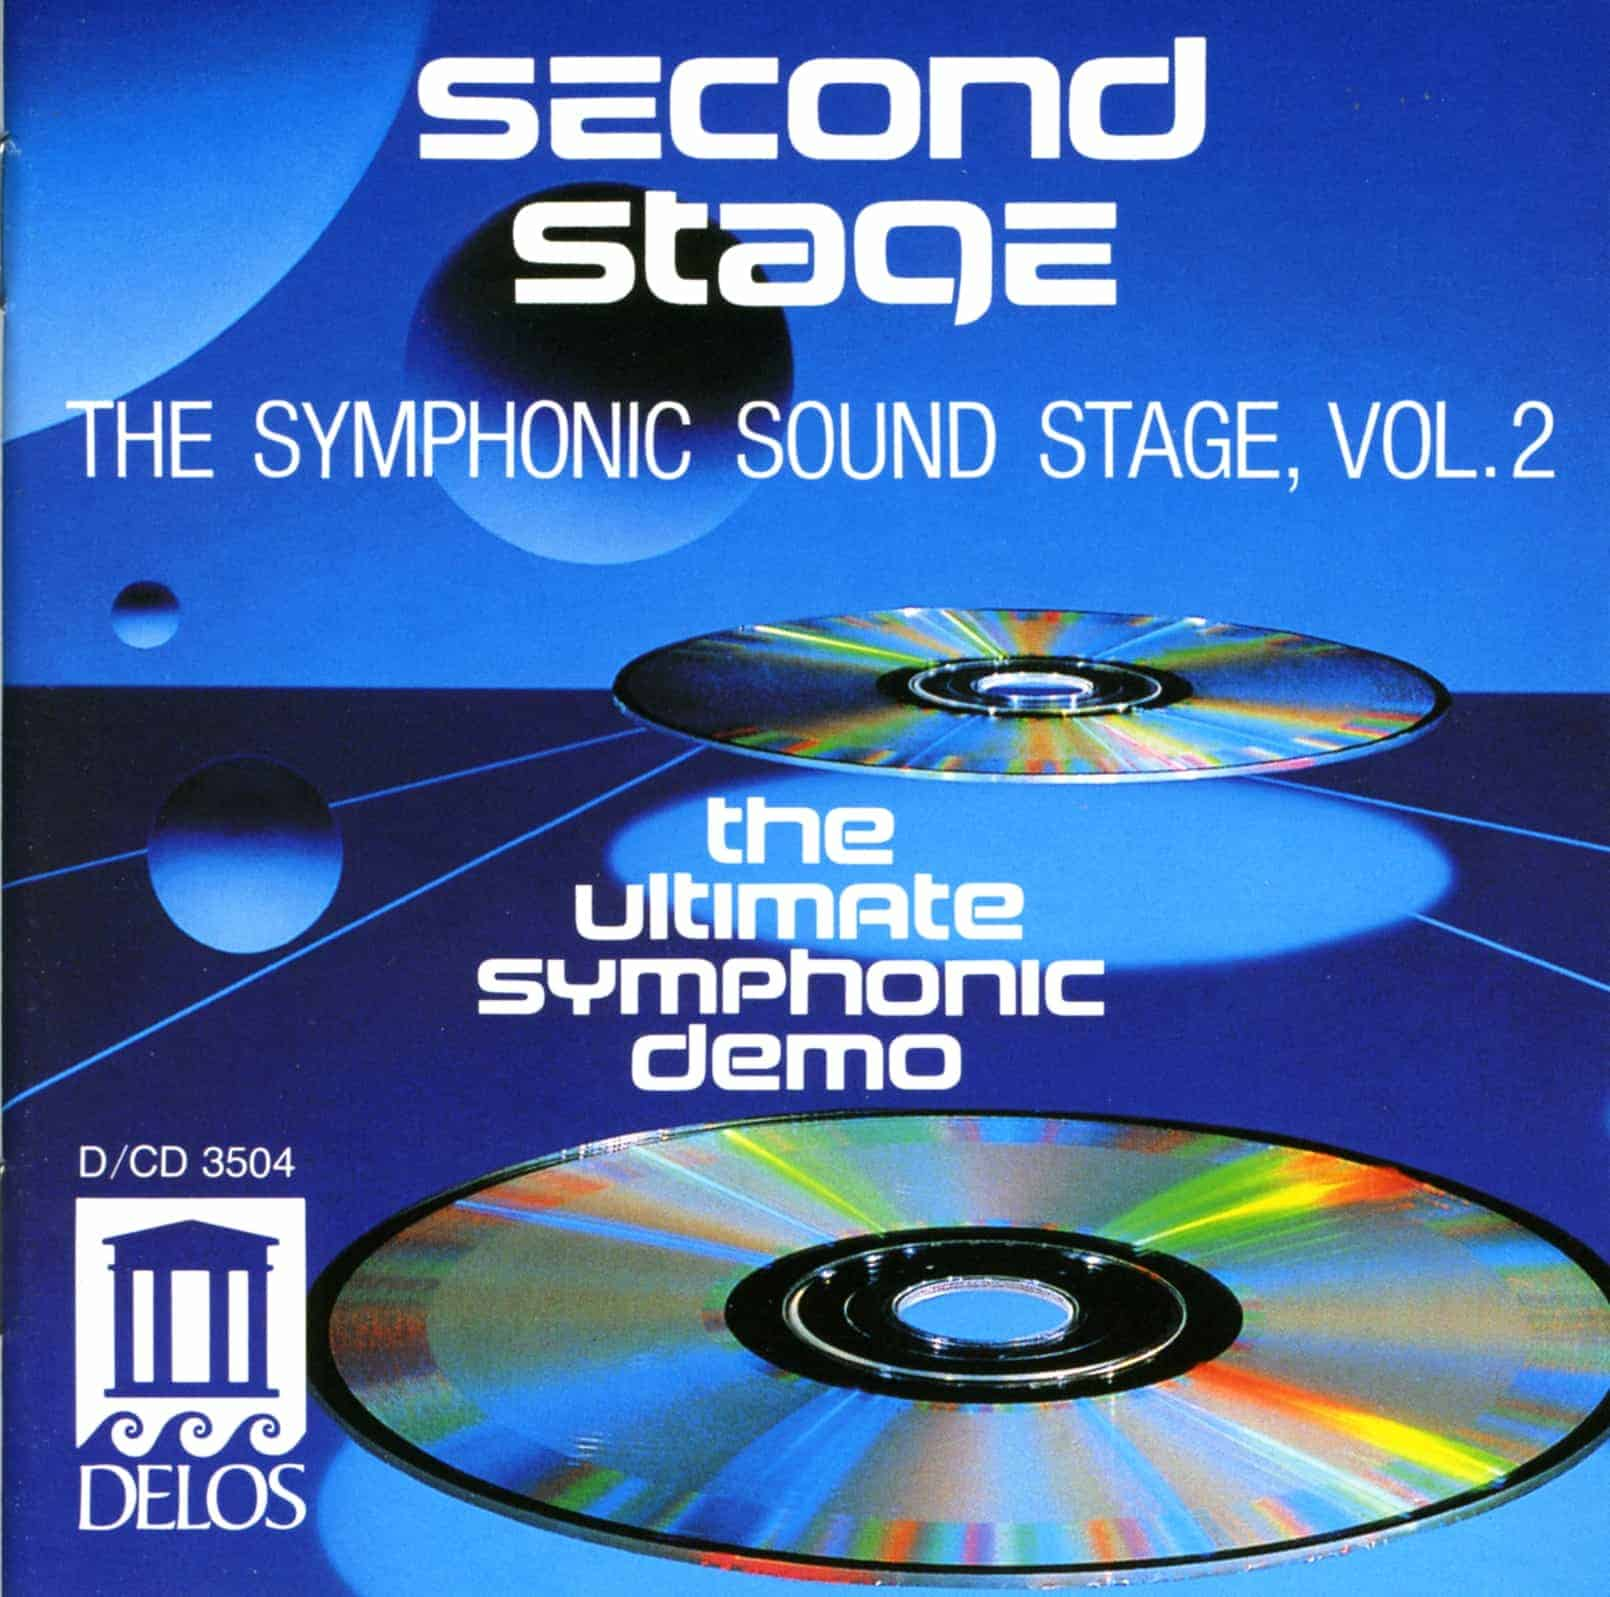 Second Stage/Symphonic Sound Stage, Vol. 2